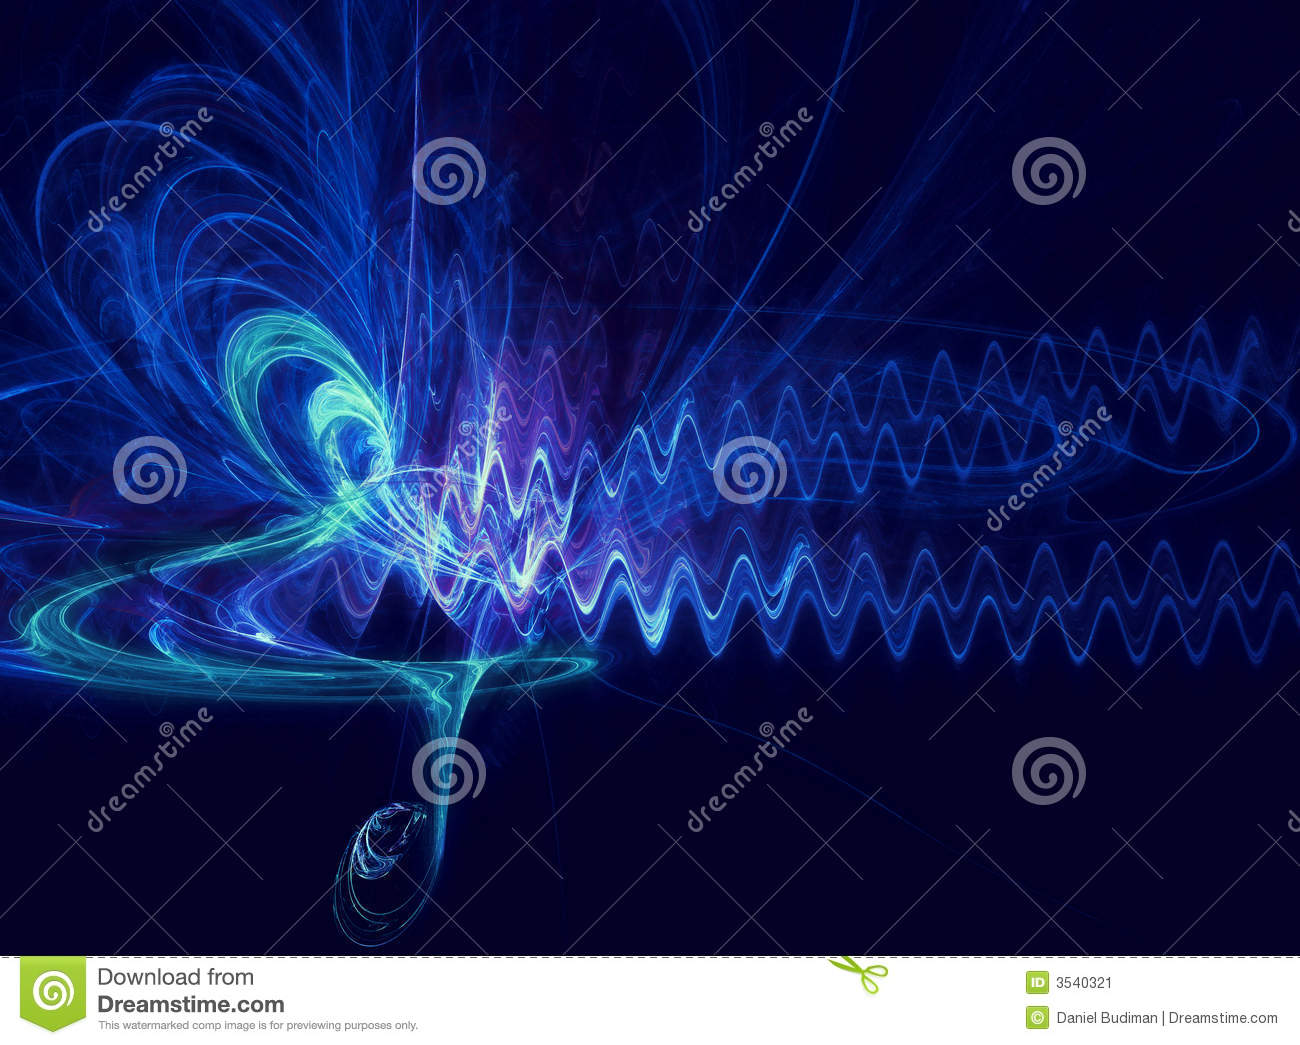 Soundwave abstrait